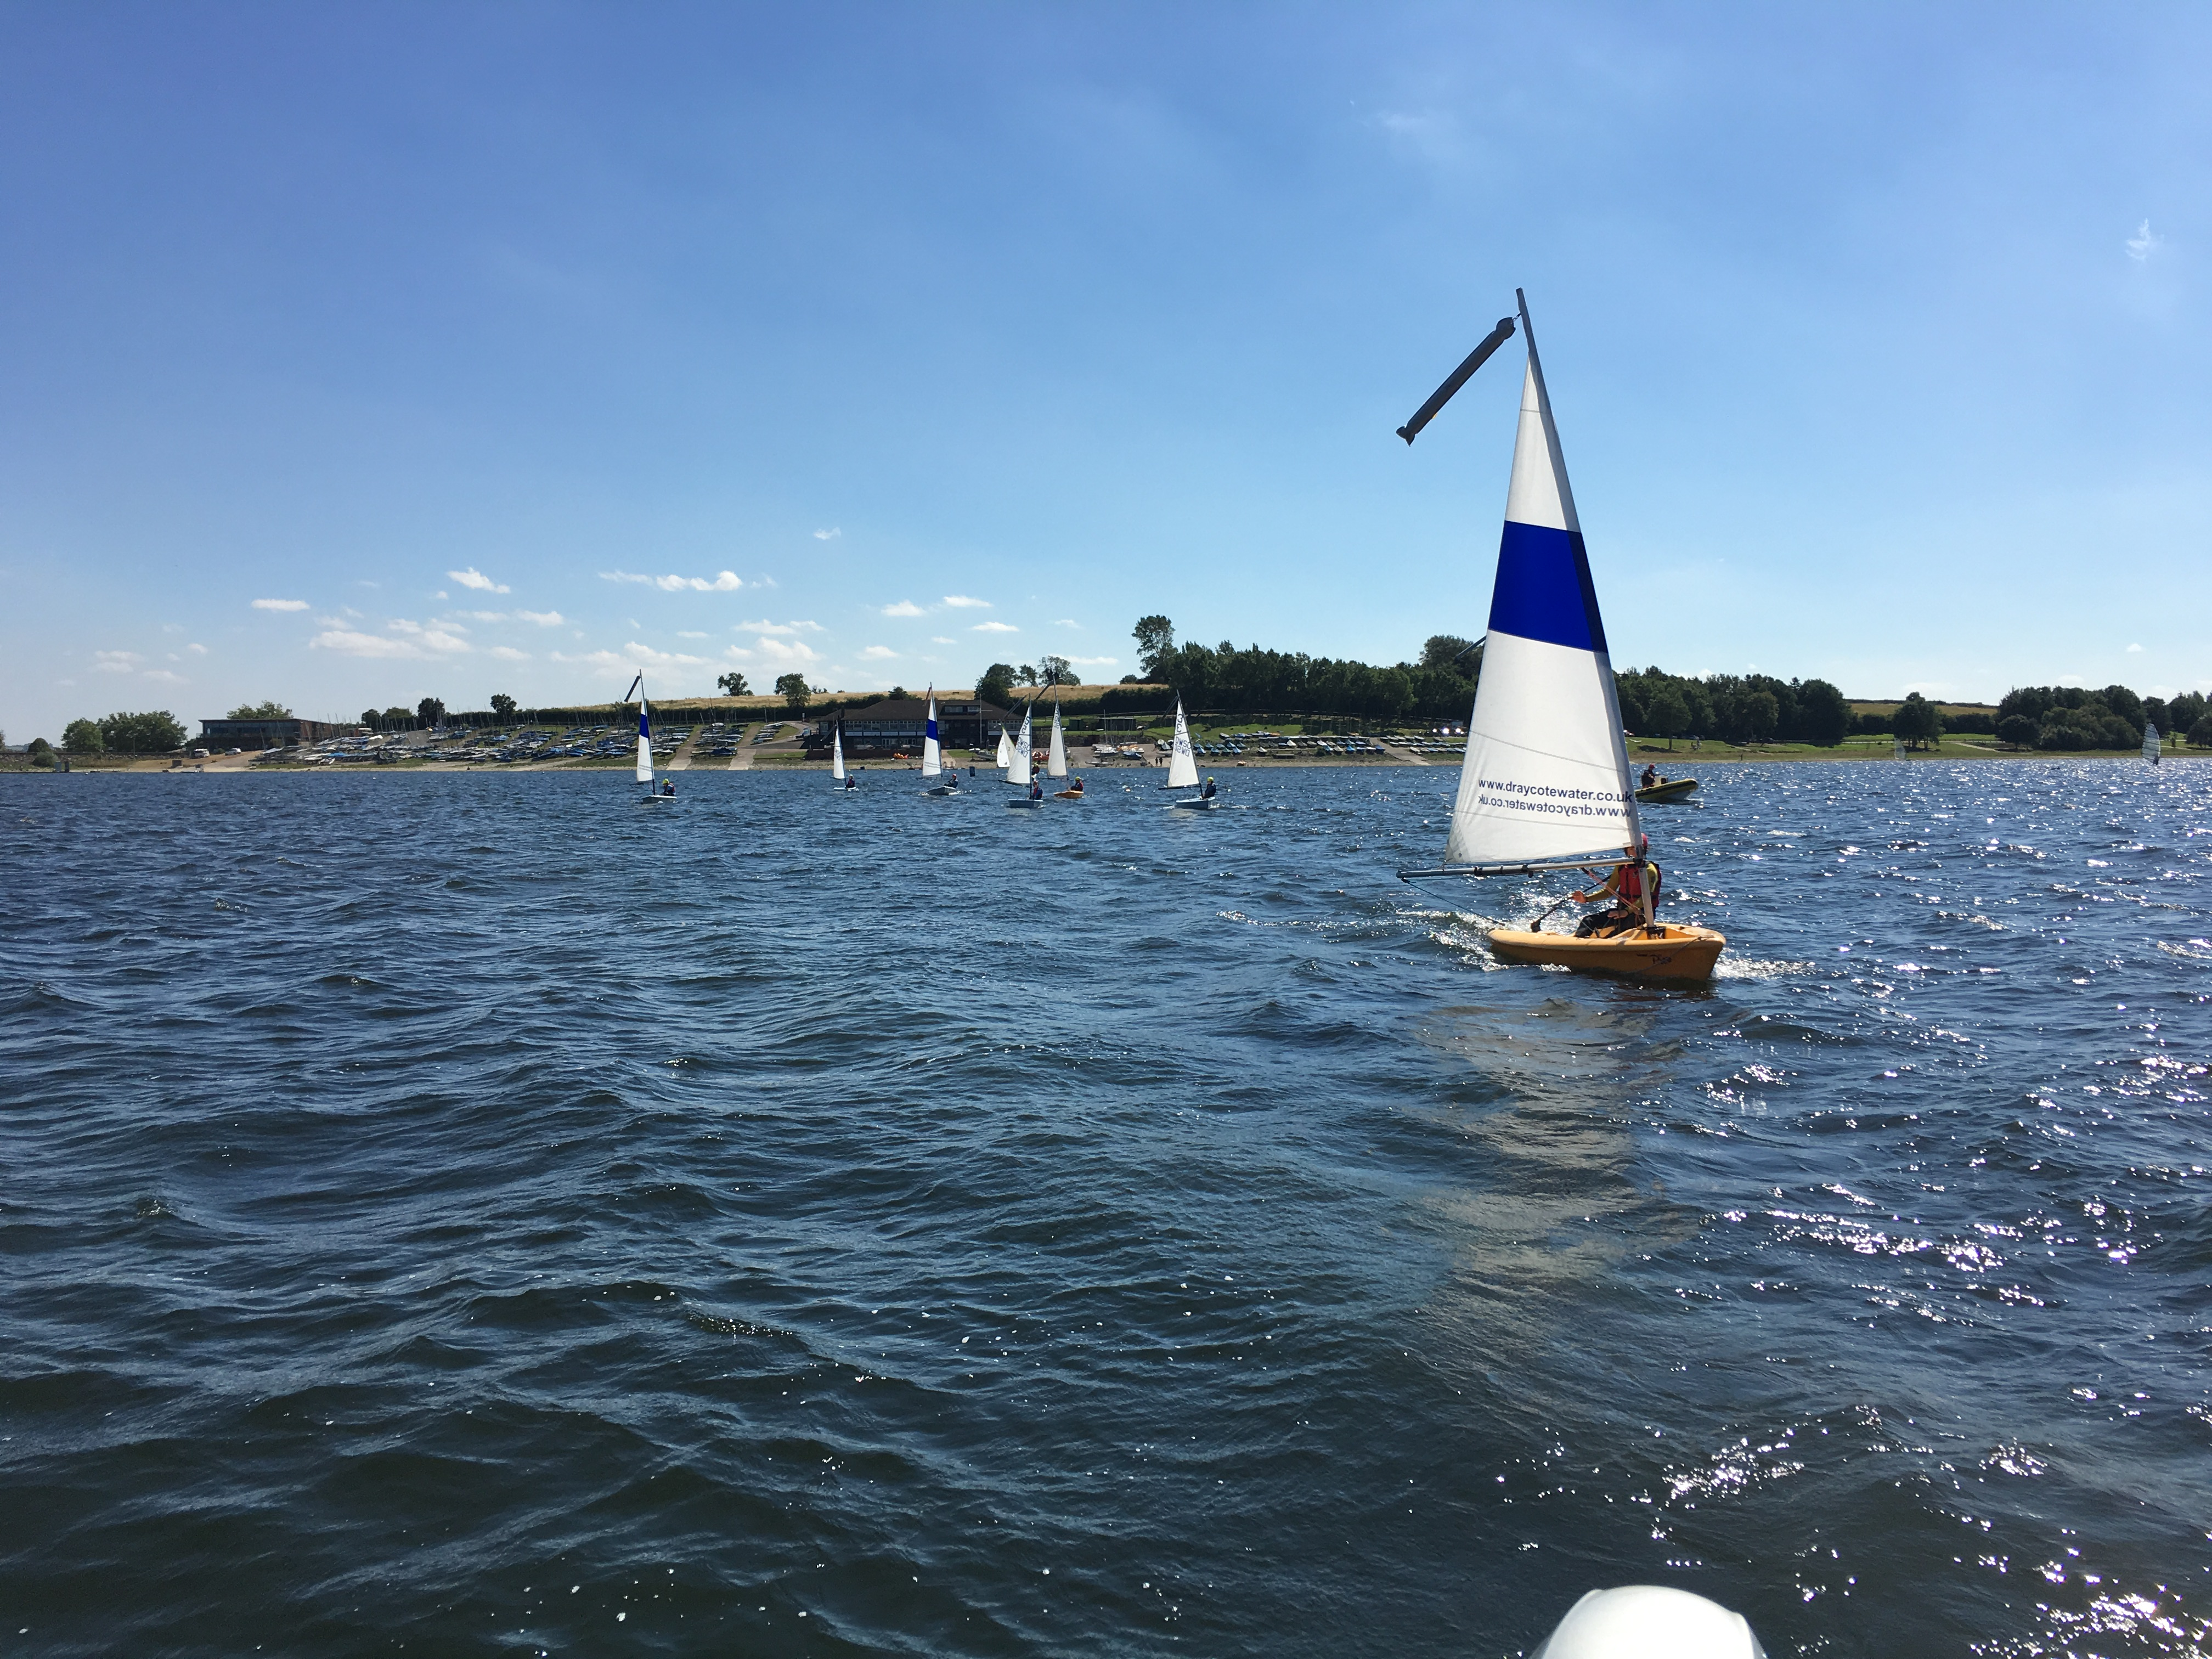 How to Find Us – Draycote Water Sailing Club